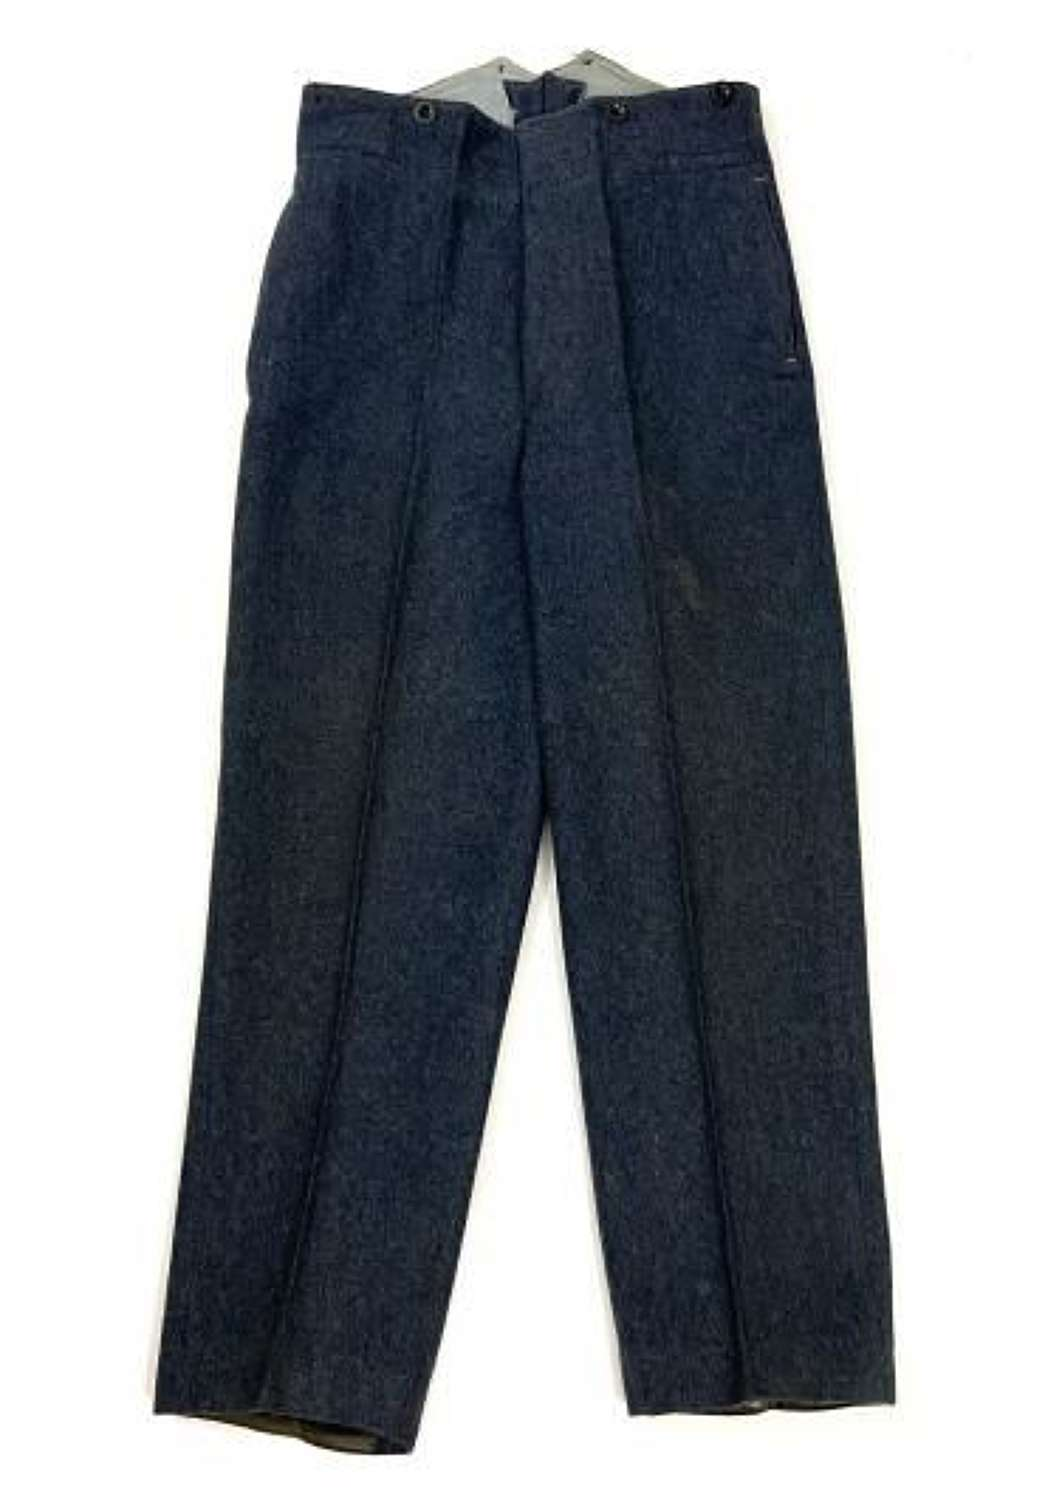 Original 1950 Dated RAF Ordinary Airman's Trousers - Size No. 11